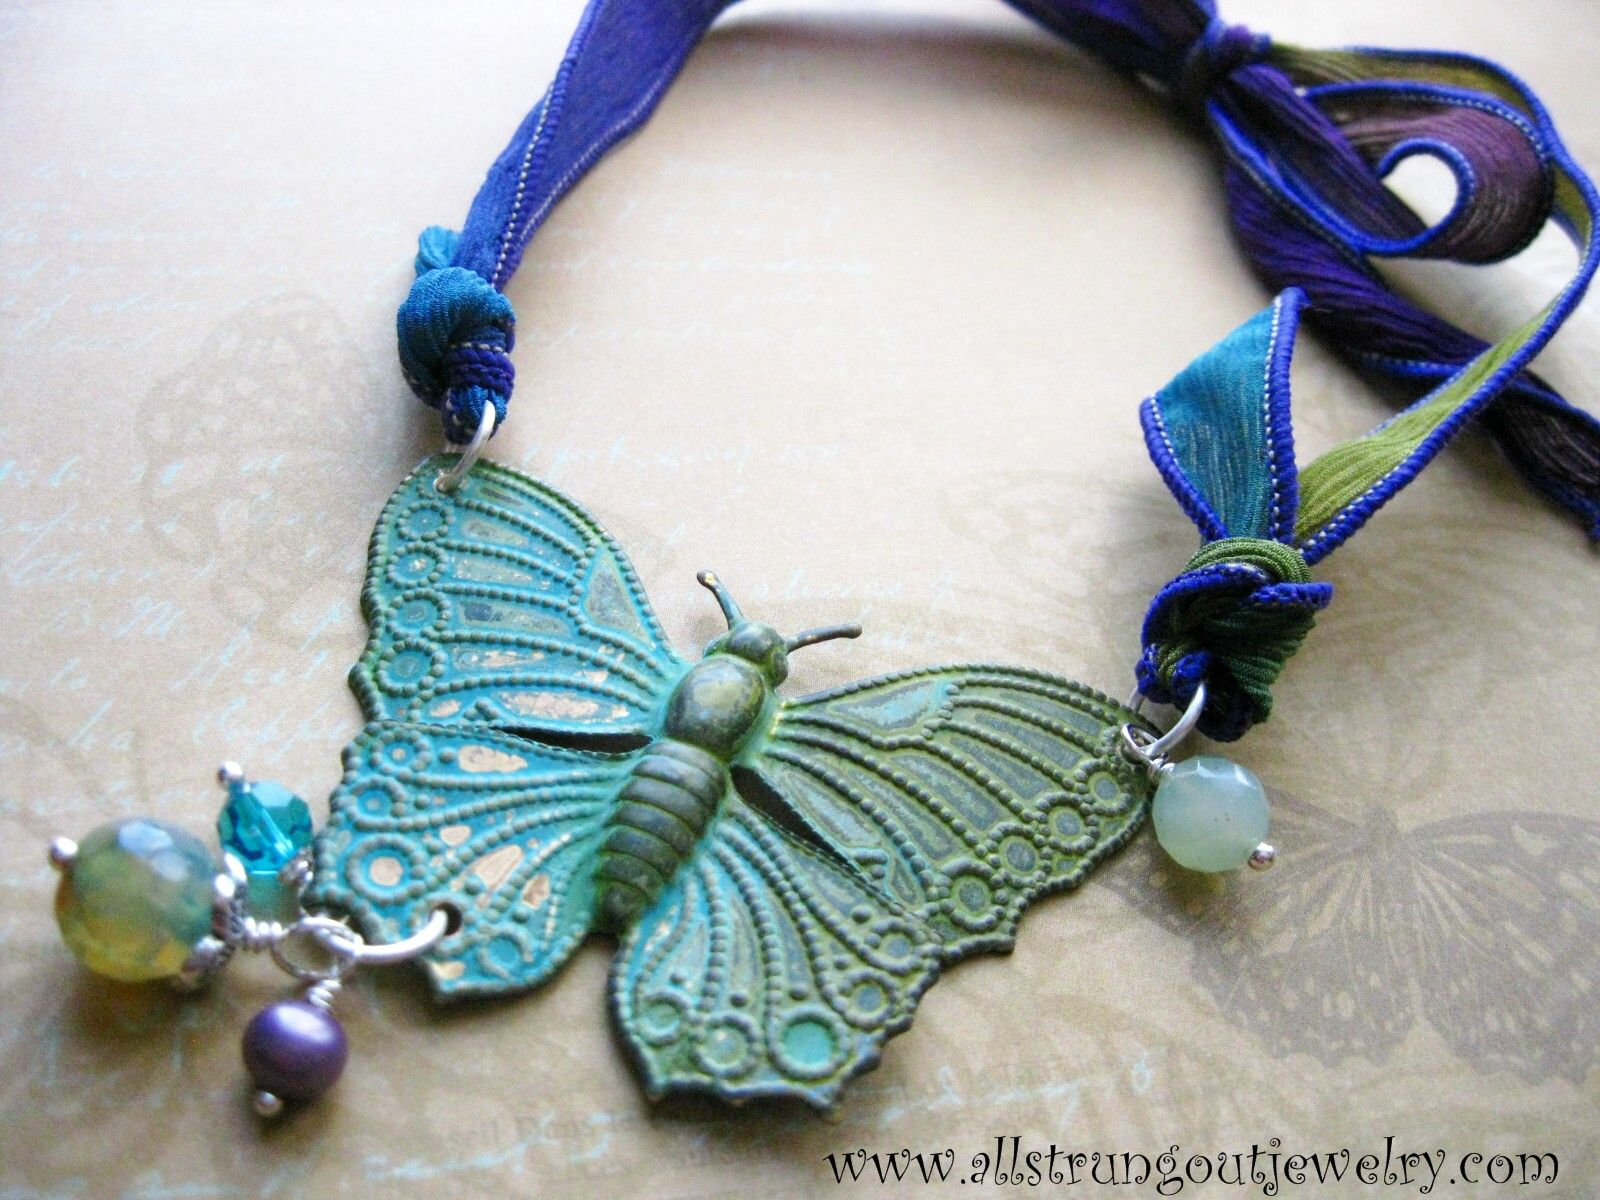 ribbon wing sari silk flight mixed media with winter key recycled necklace pin chain s gears